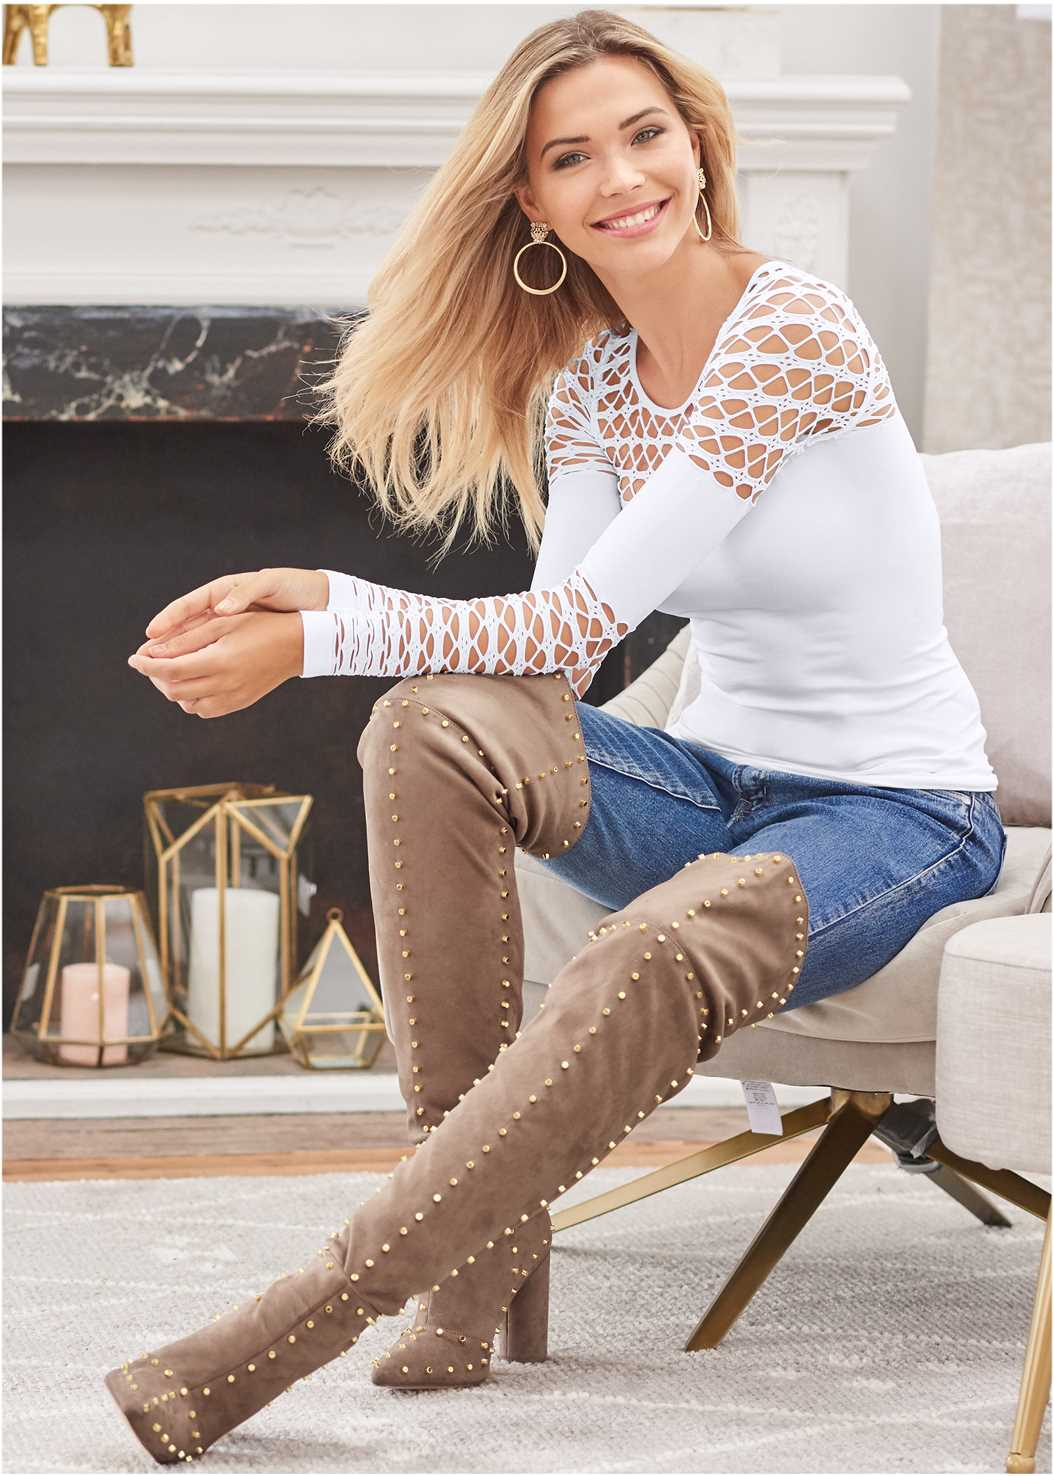 Seamless Fitted Cut Out Top,Mid Rise Slimming Stretch Jeggings,Mid Rise Color Skinny Jeans,Reversible Jeans,Faux Leather Pants,Smooth Longline Push Up Bra,Peep Toe Mules,Tassel Hoop Earrings,Rhinestone Fringe Earrings,Crisscross Choker